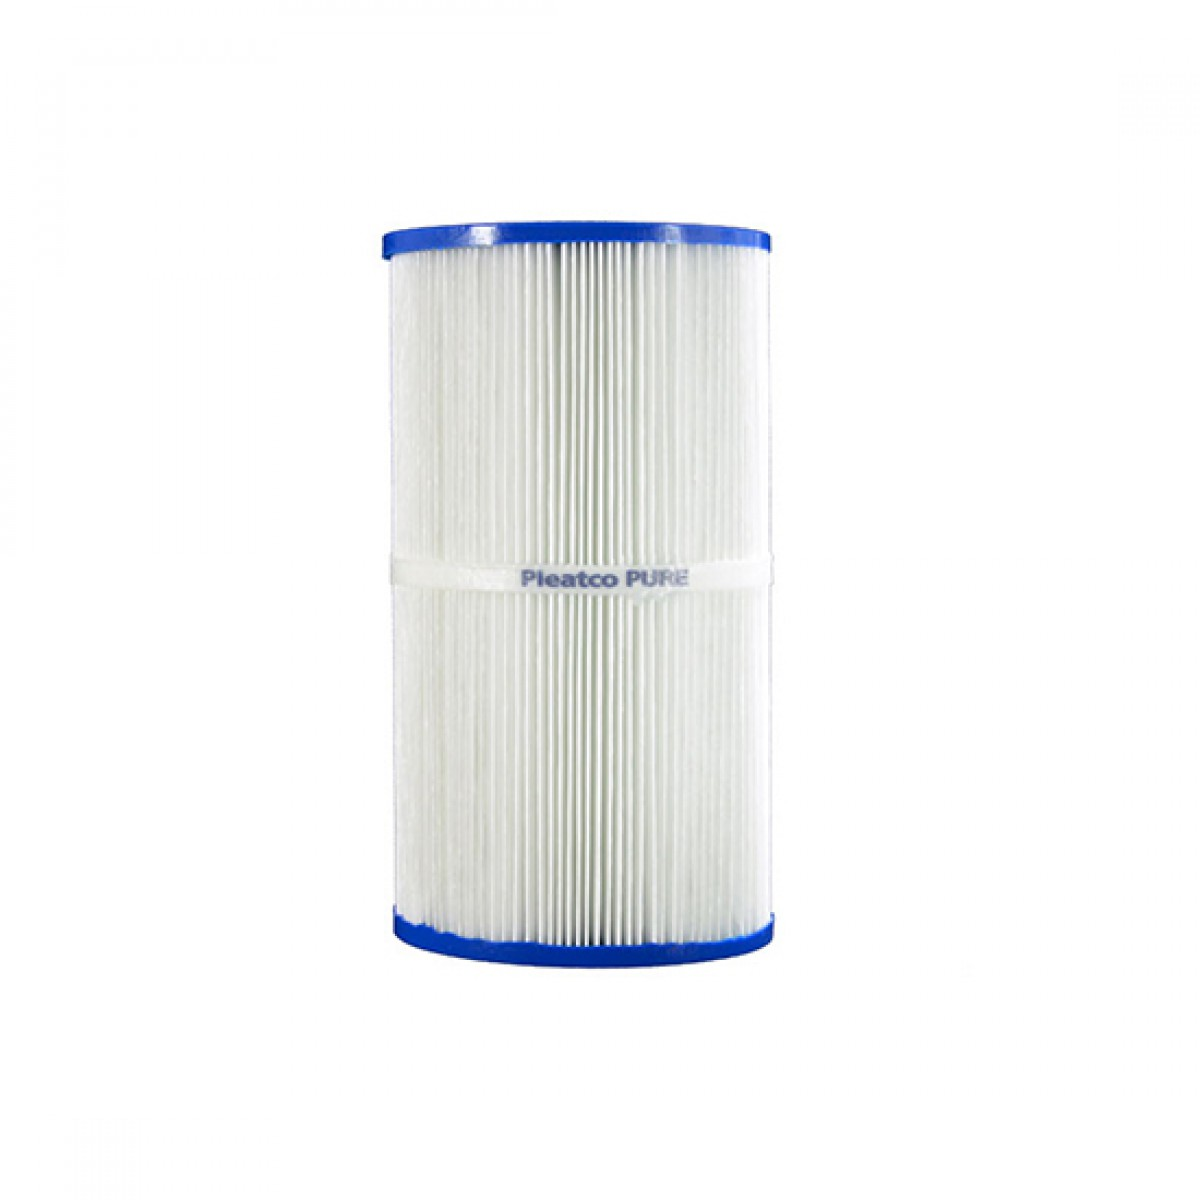 Find discount filters for air, water, refrigerator, pool & spa, and more. Original brands like Kenmore, Culligan, LG filters & more. Ships free at $